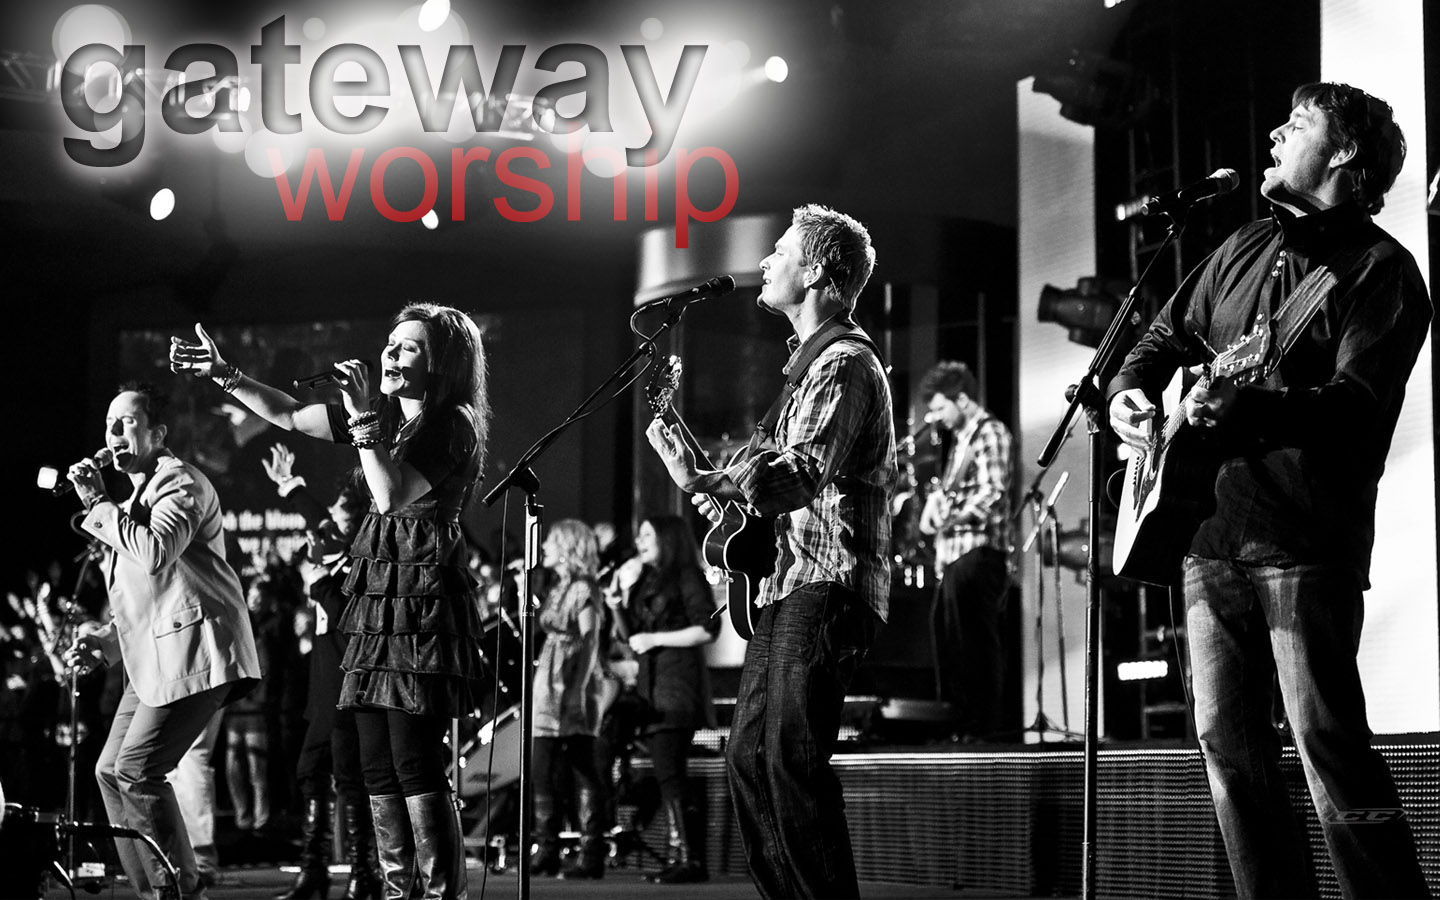 Gateway Worship - first 10 years 2013 Biography and history